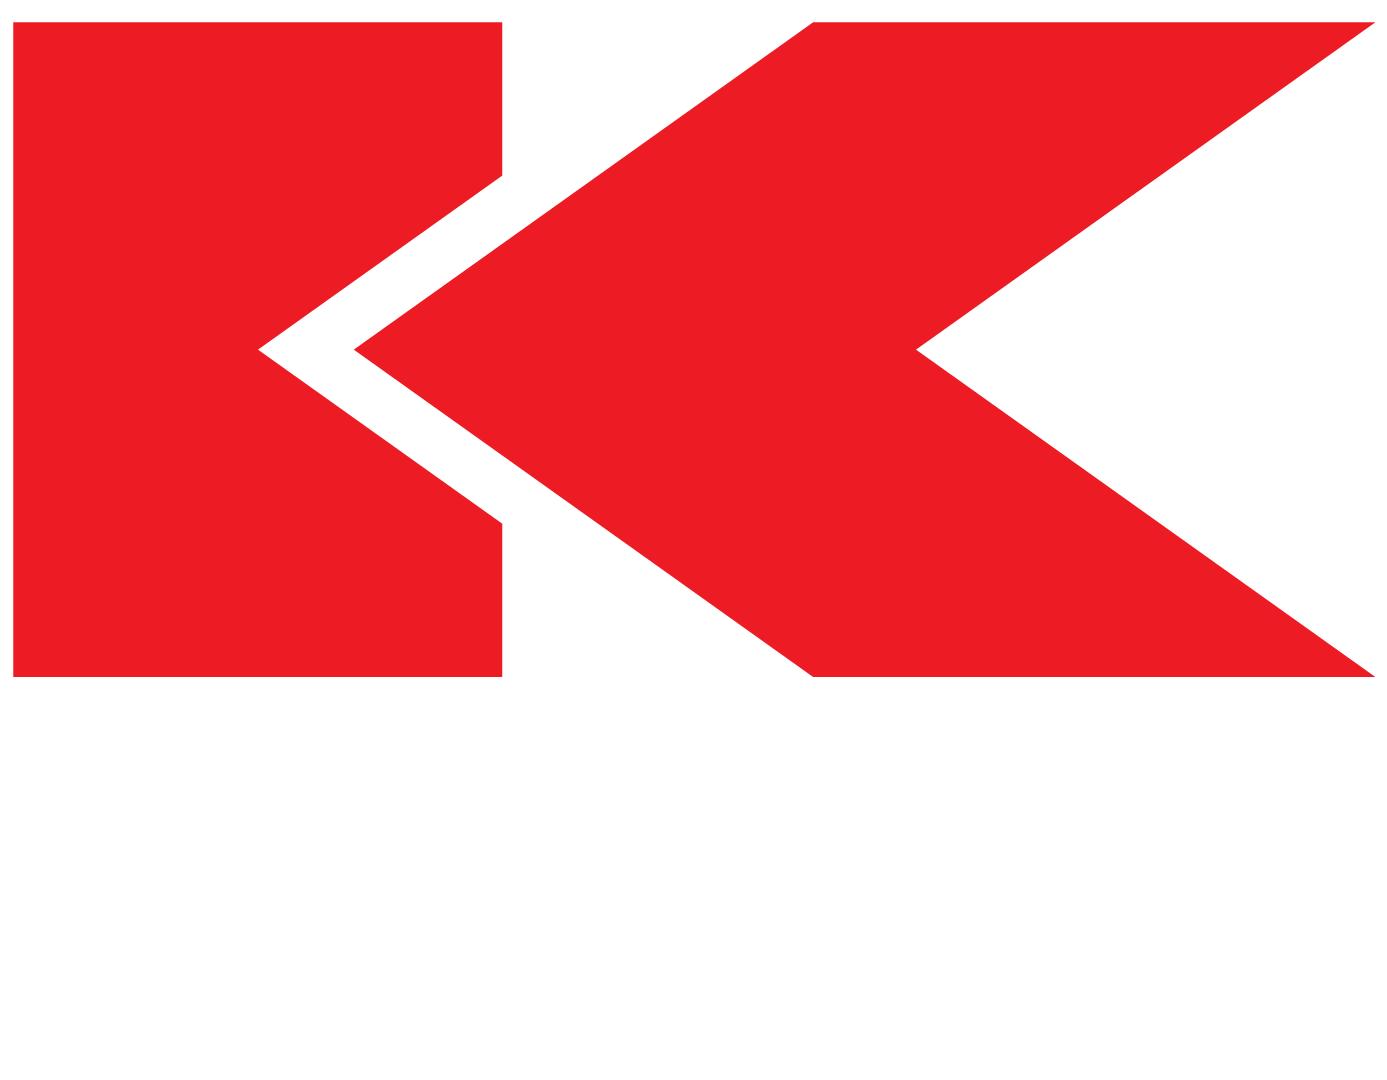 Kingston Plant Hire